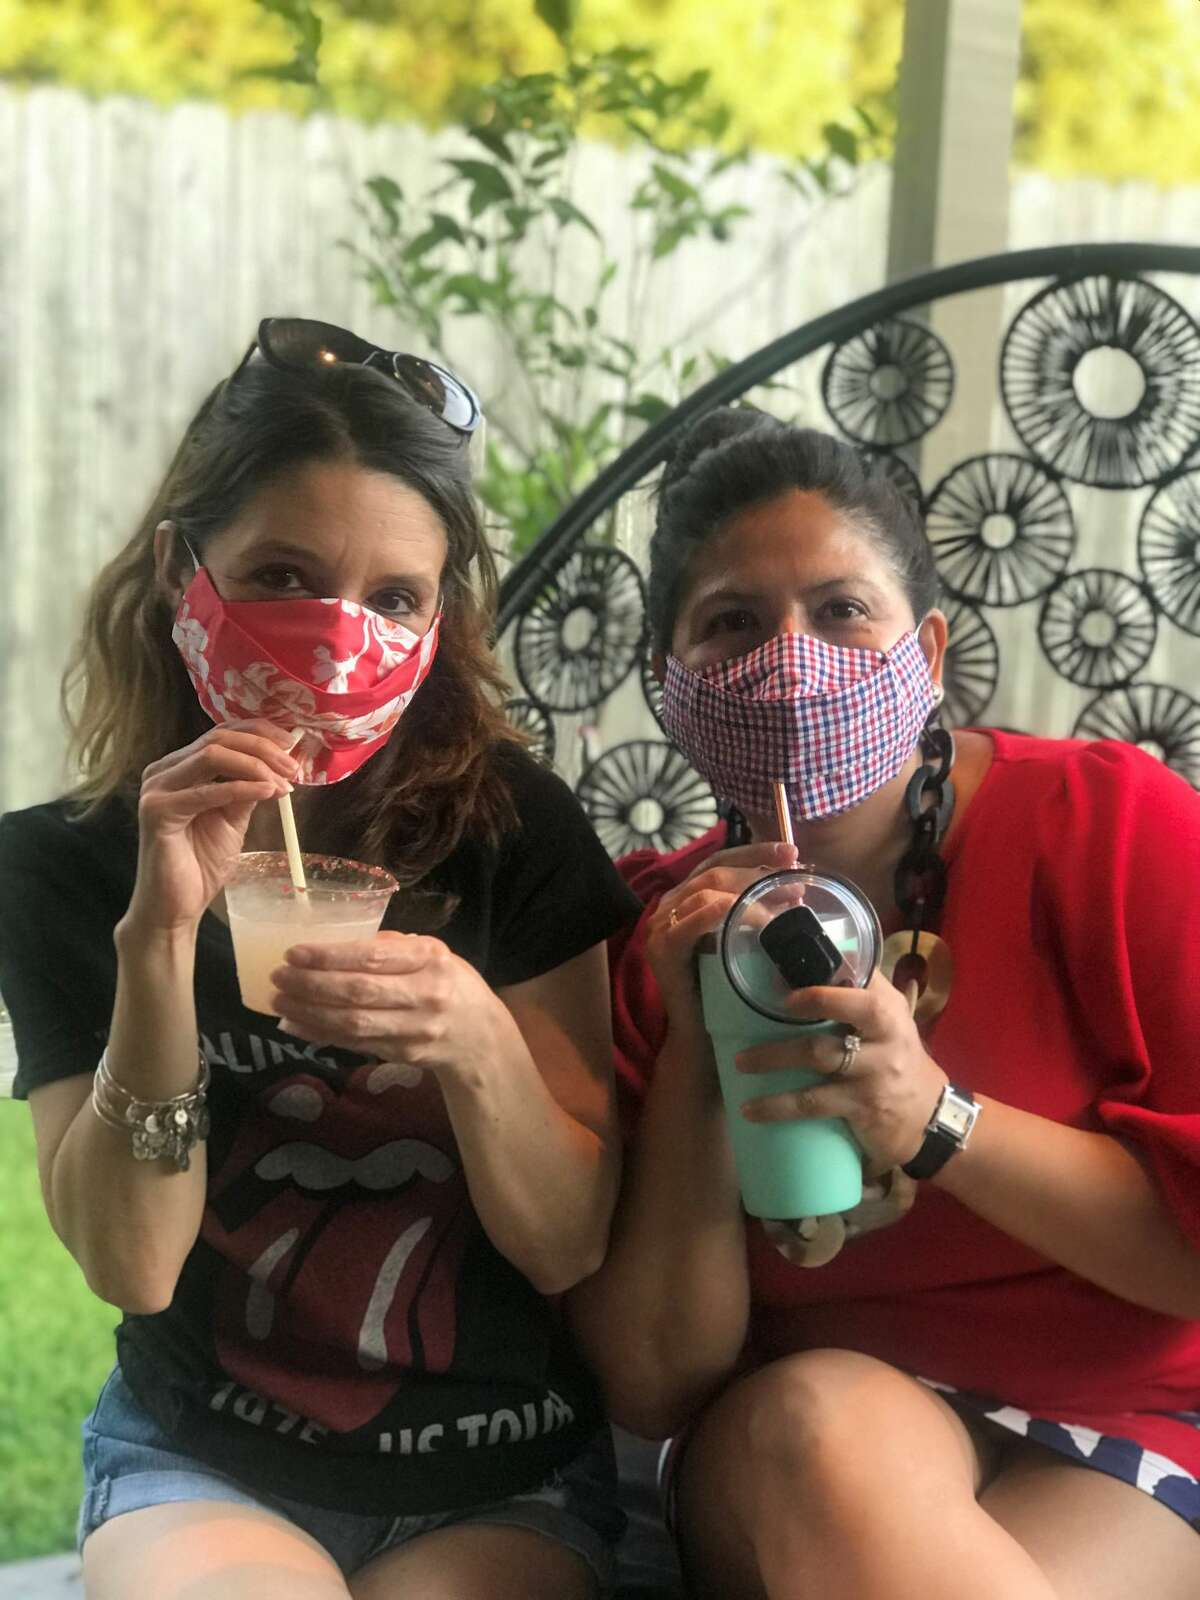 Project Runway winner and Houston fashion designer Chloe Dao has created the Safely Sip in Style mask, $25, which allow users to sip drinks through a straw without removing the mask.